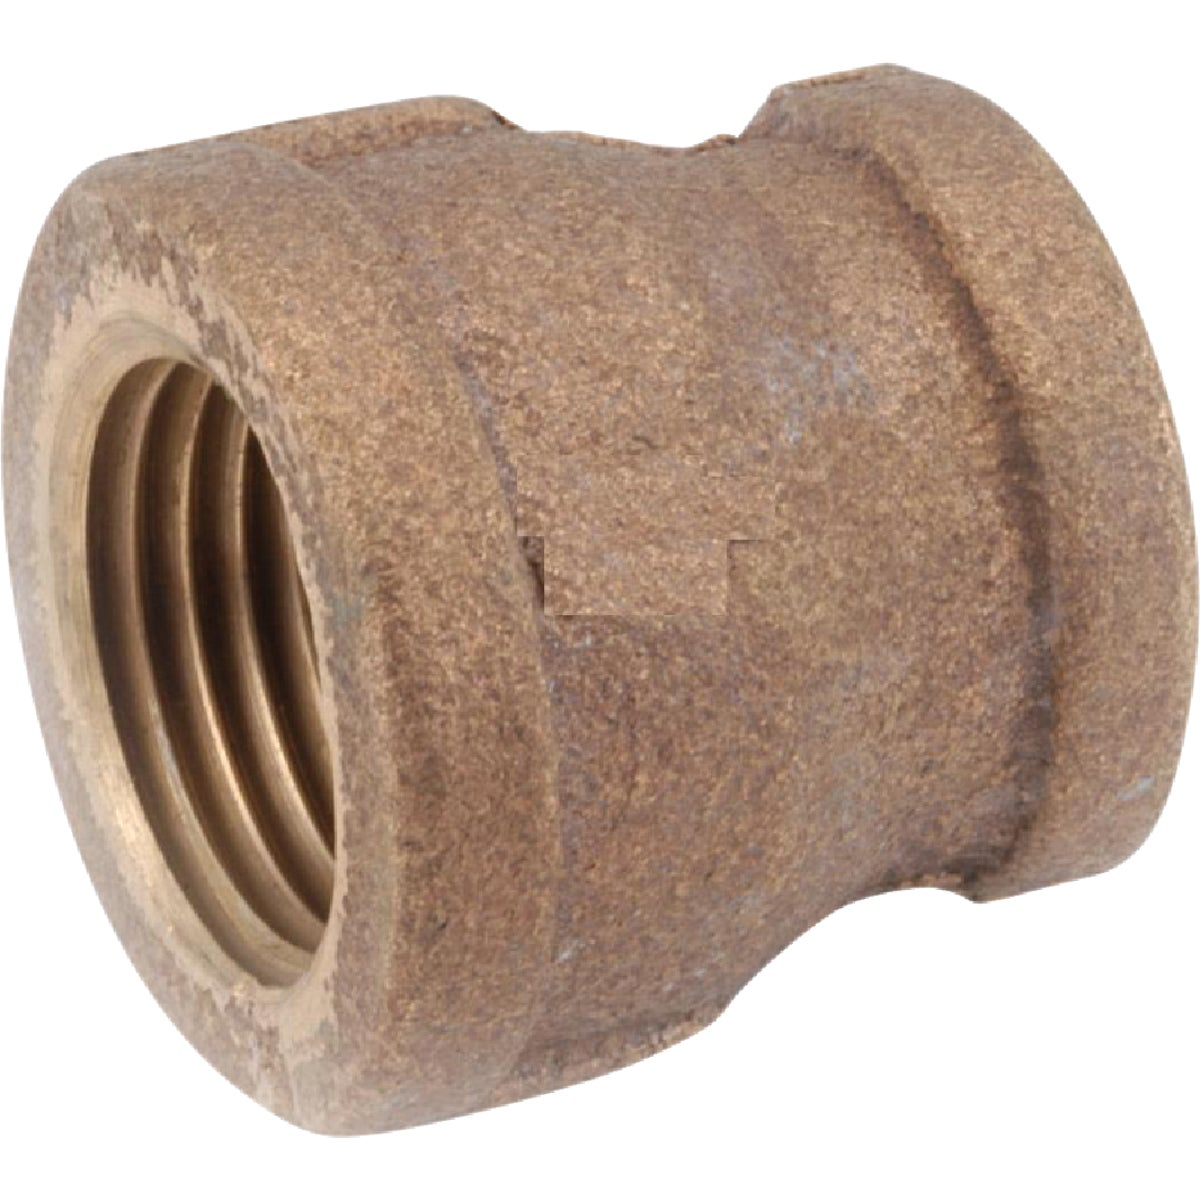 1X1/2 BRASS COUPLING - 738119-1608 by Anderson Metals Corp